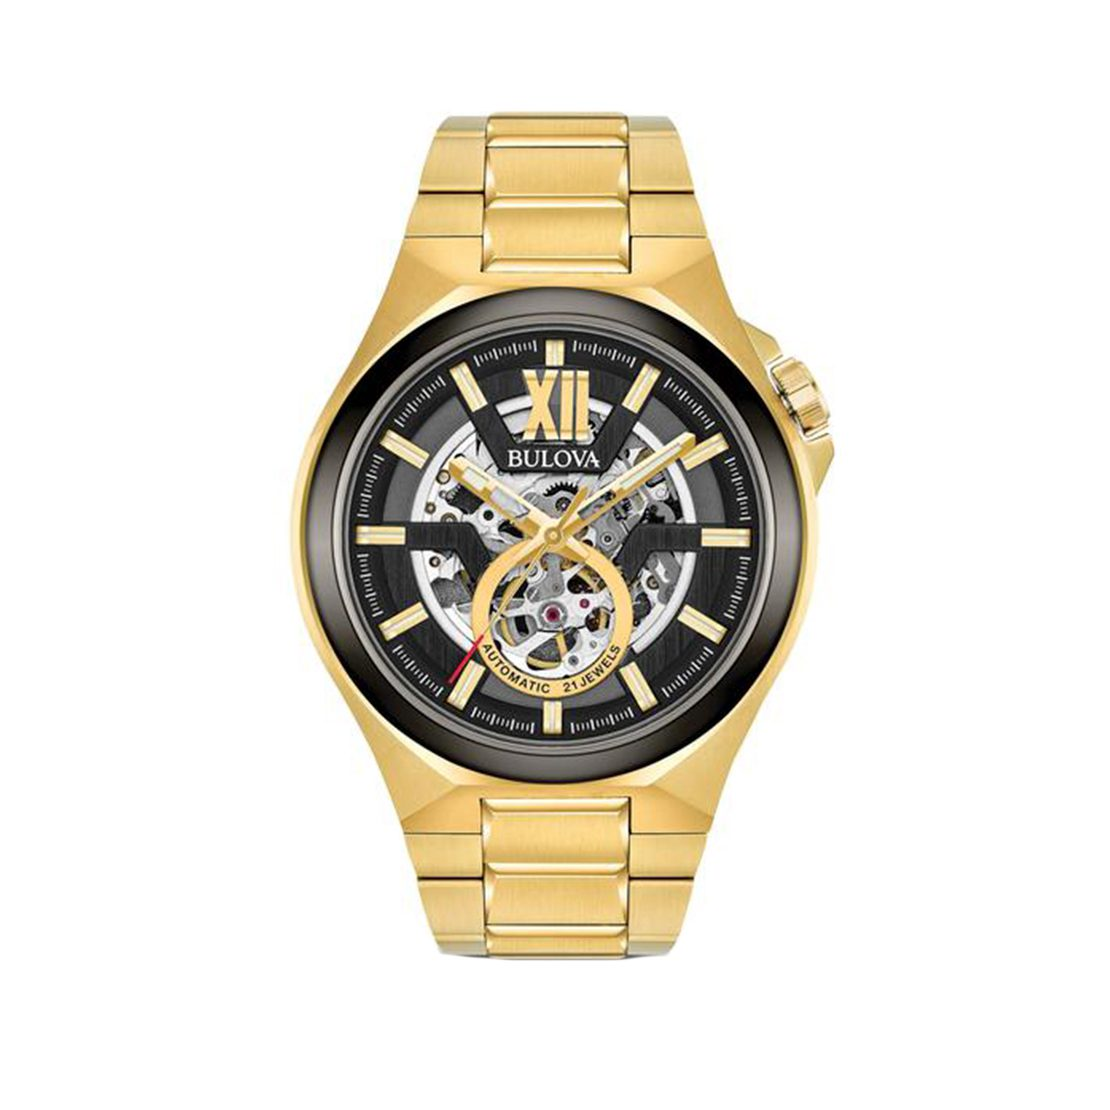 Men's Bulova sports automatic watch two-tone gold with gunmetal, stainless steel, black dial